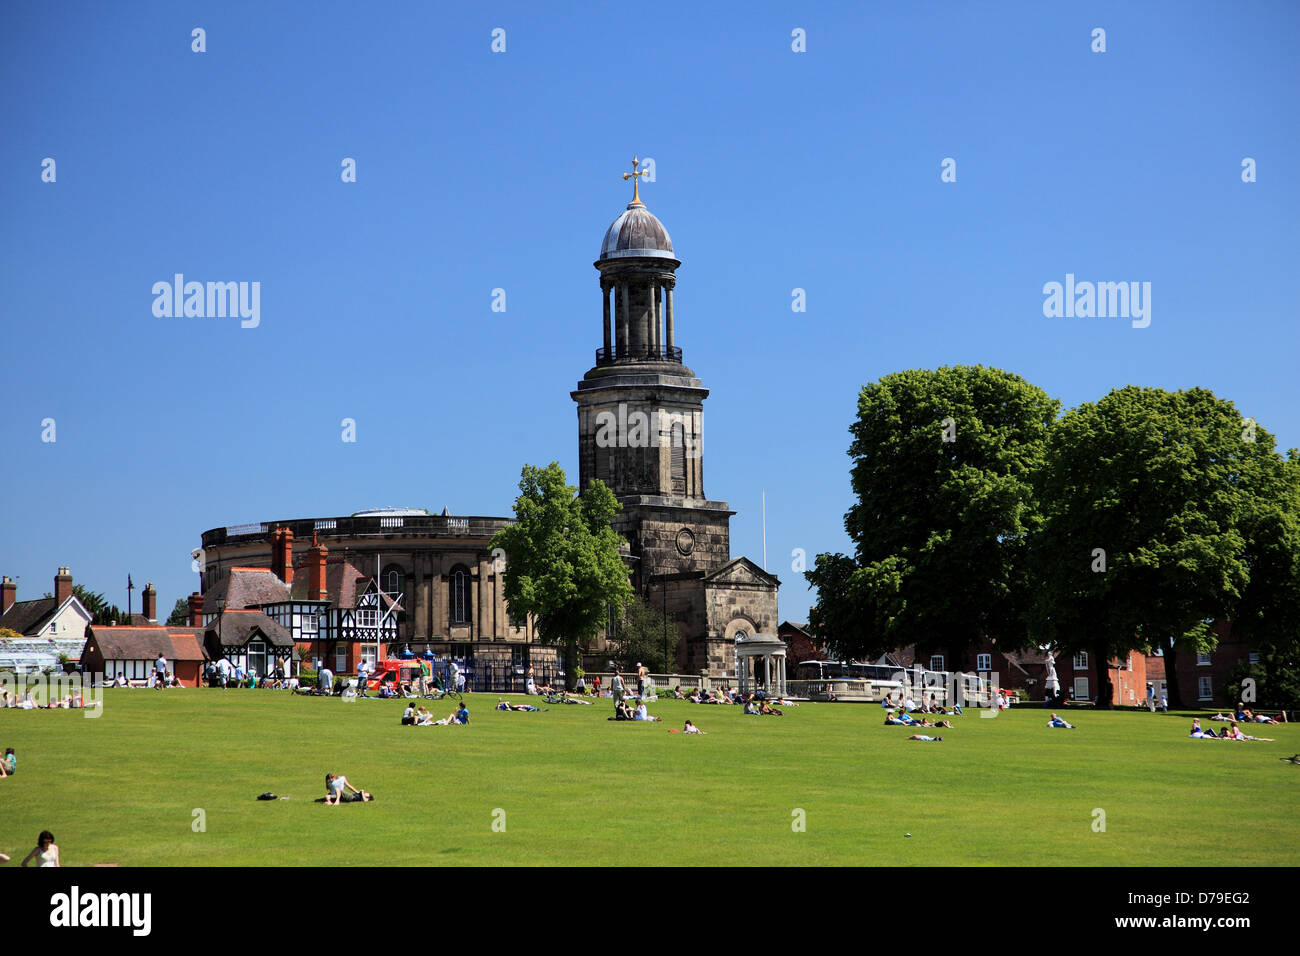 St Chad's Church and the Quarry, Shrewsbury, England - Stock Image